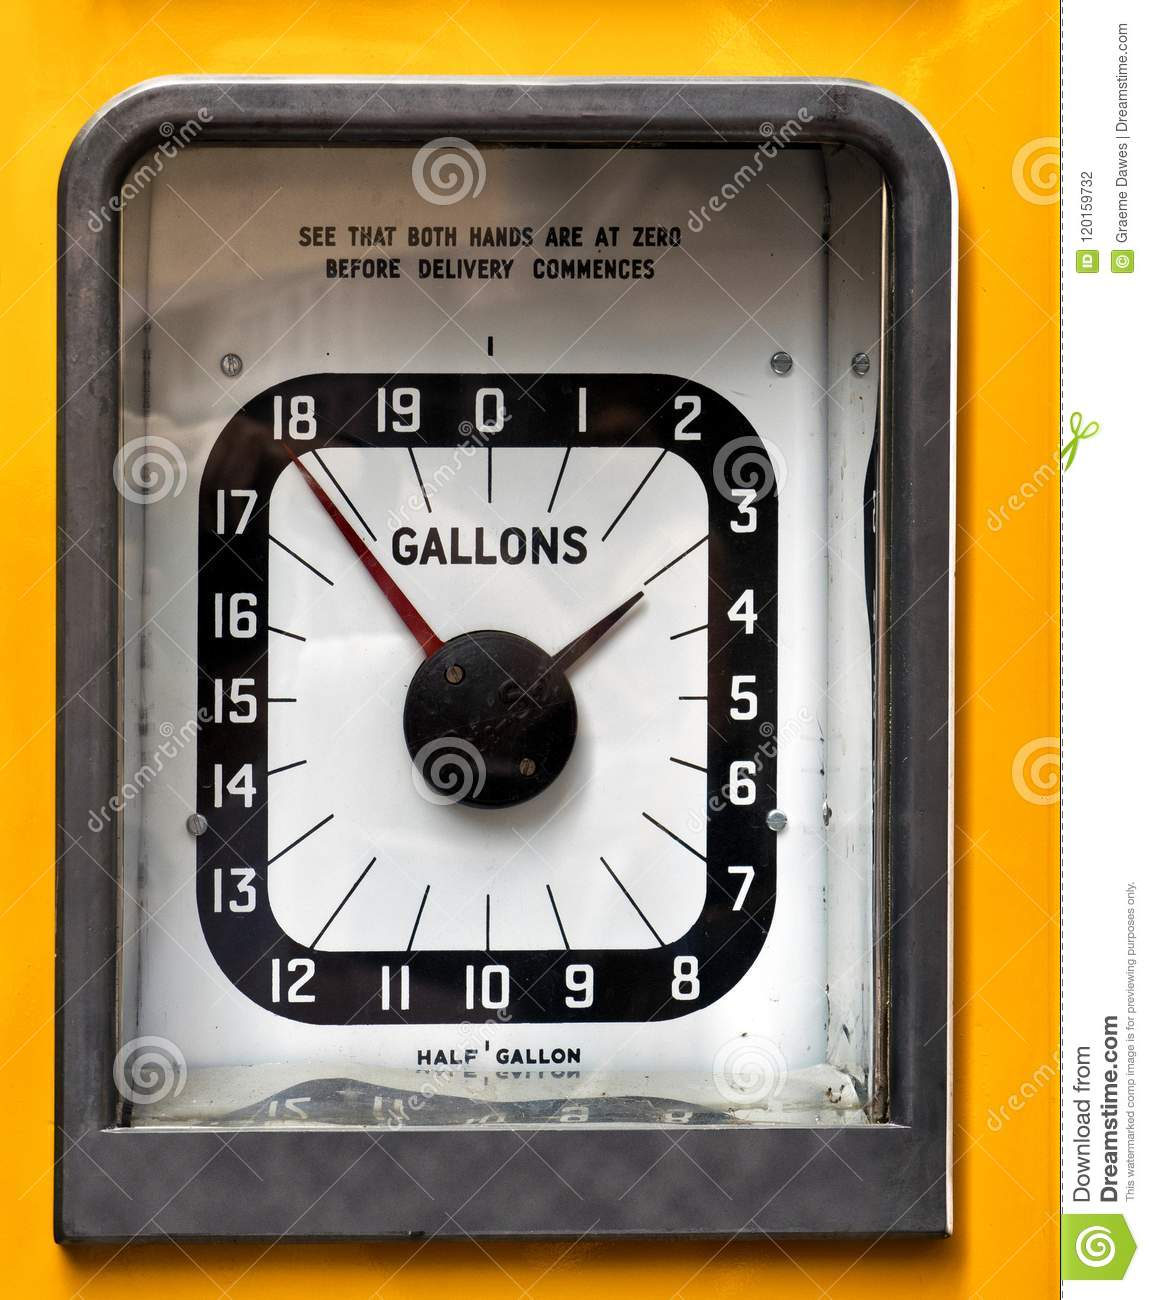 Vintage Analog Petrol Or Gas Pump Stock Photo - Image of